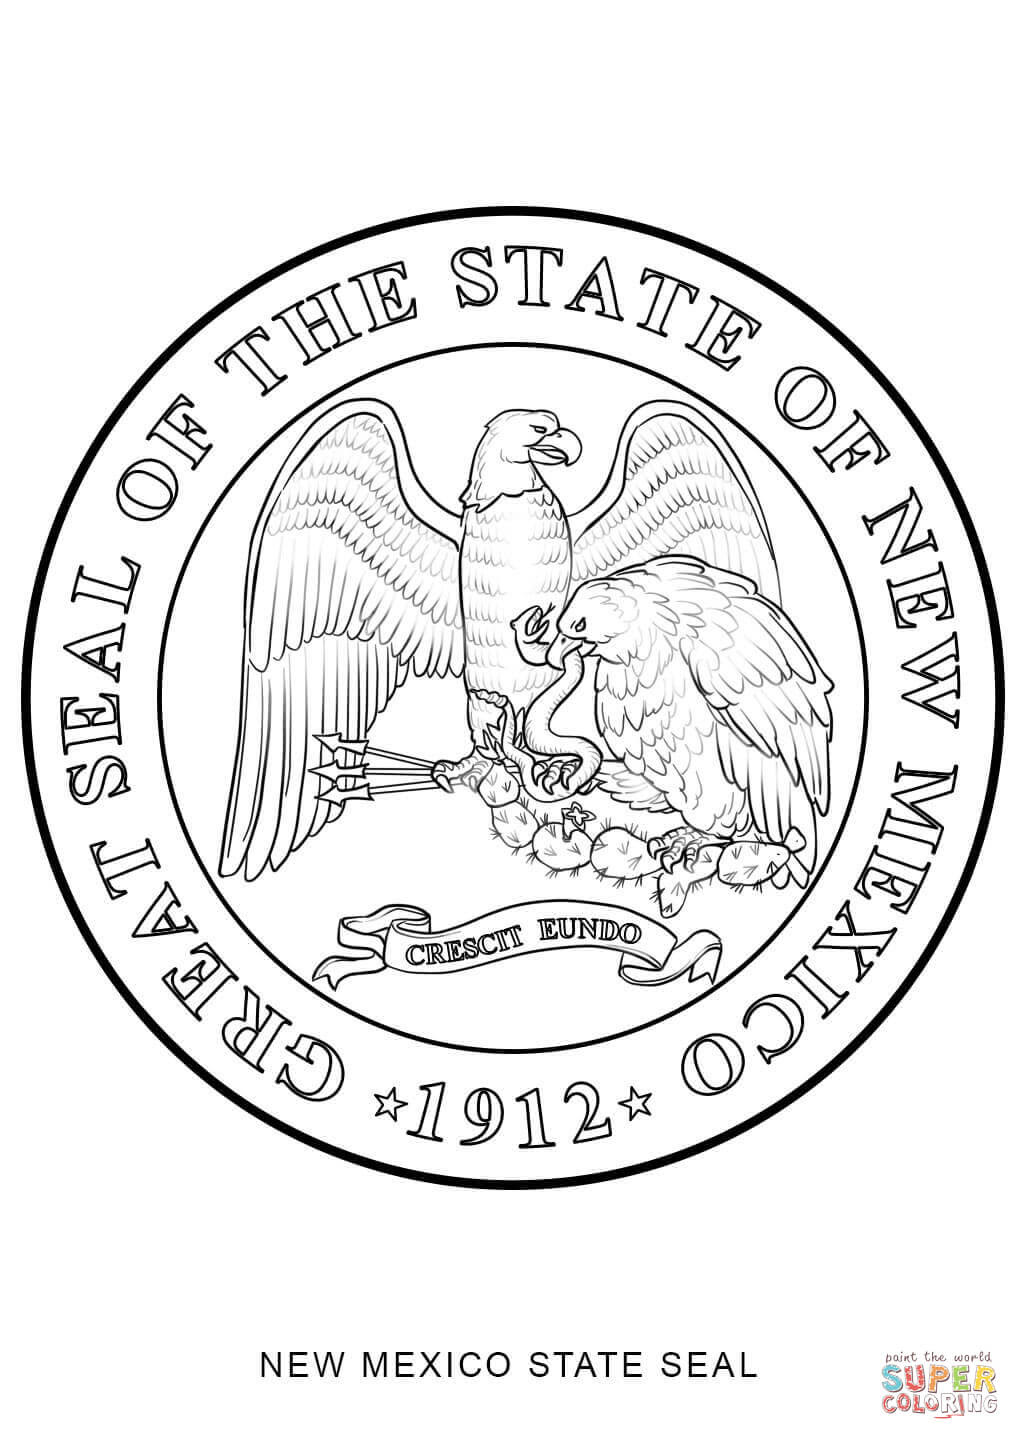 nc state seal coloring pages - photo#13